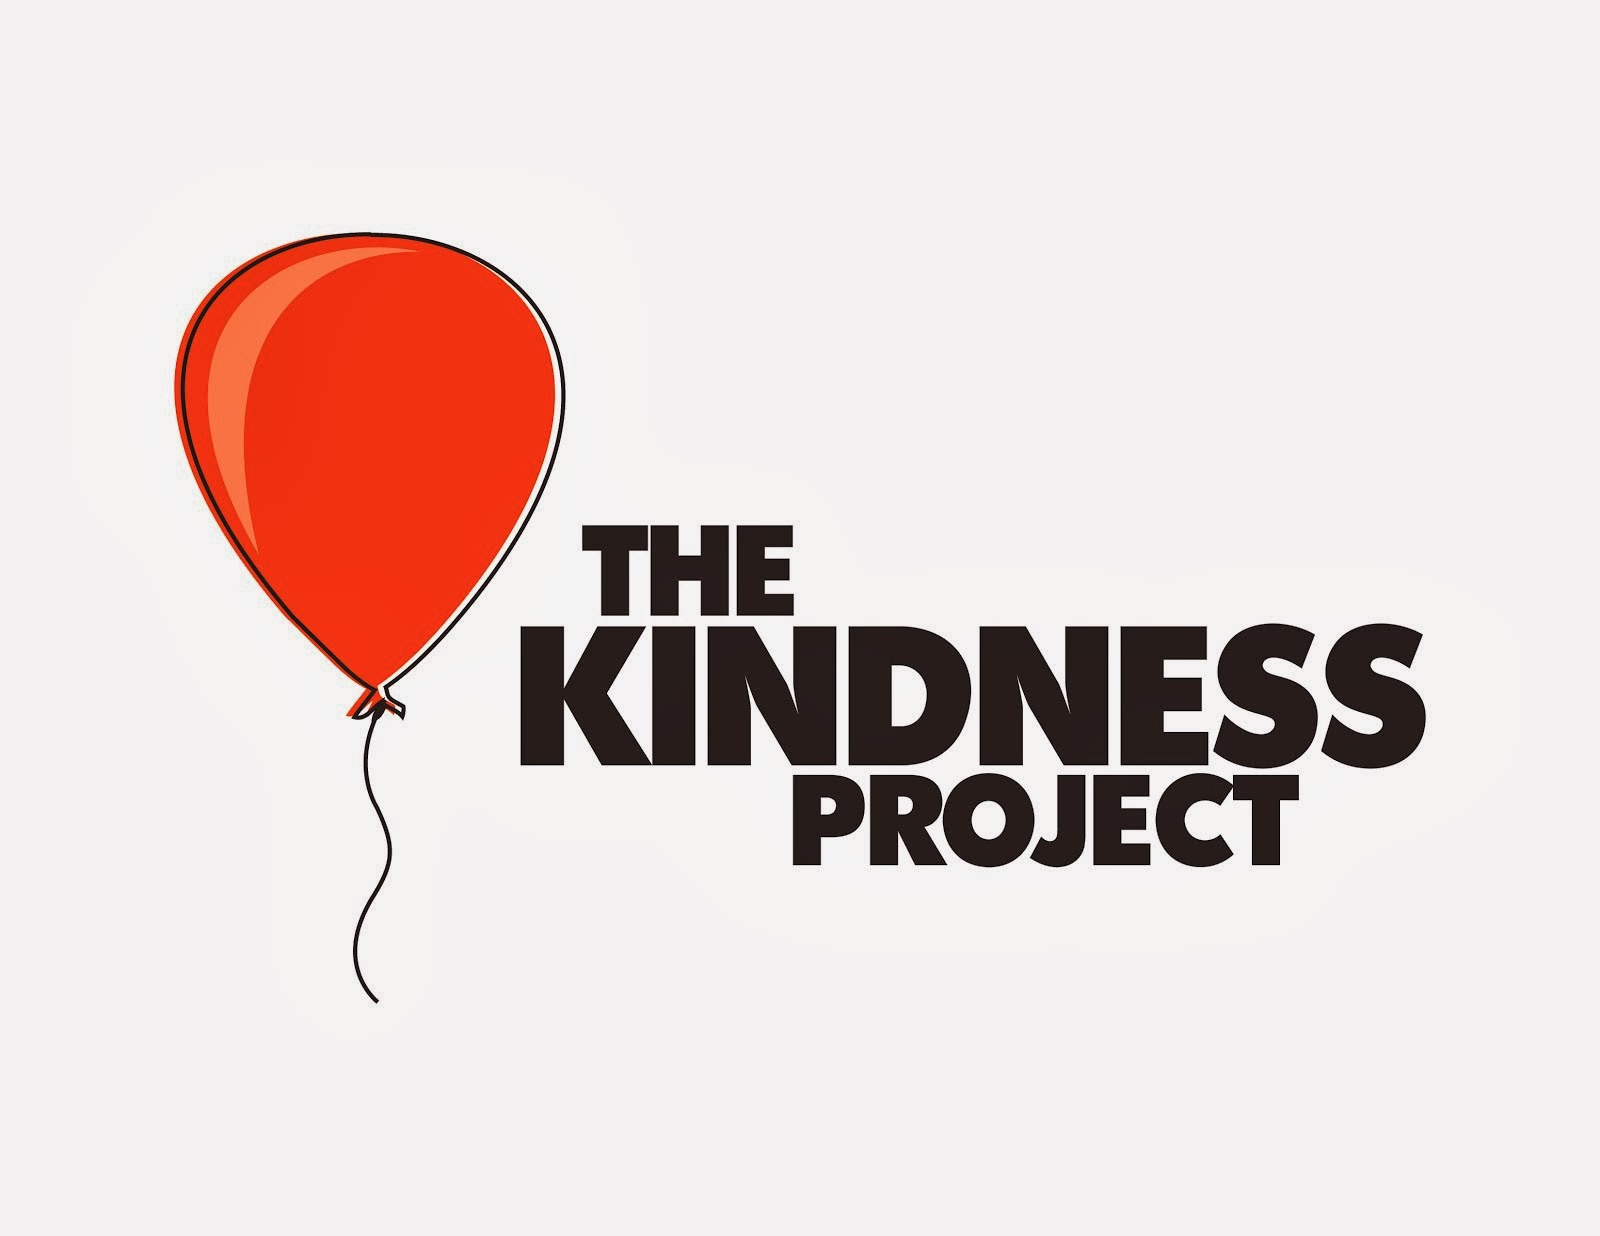 Learn more about The Kindness Project